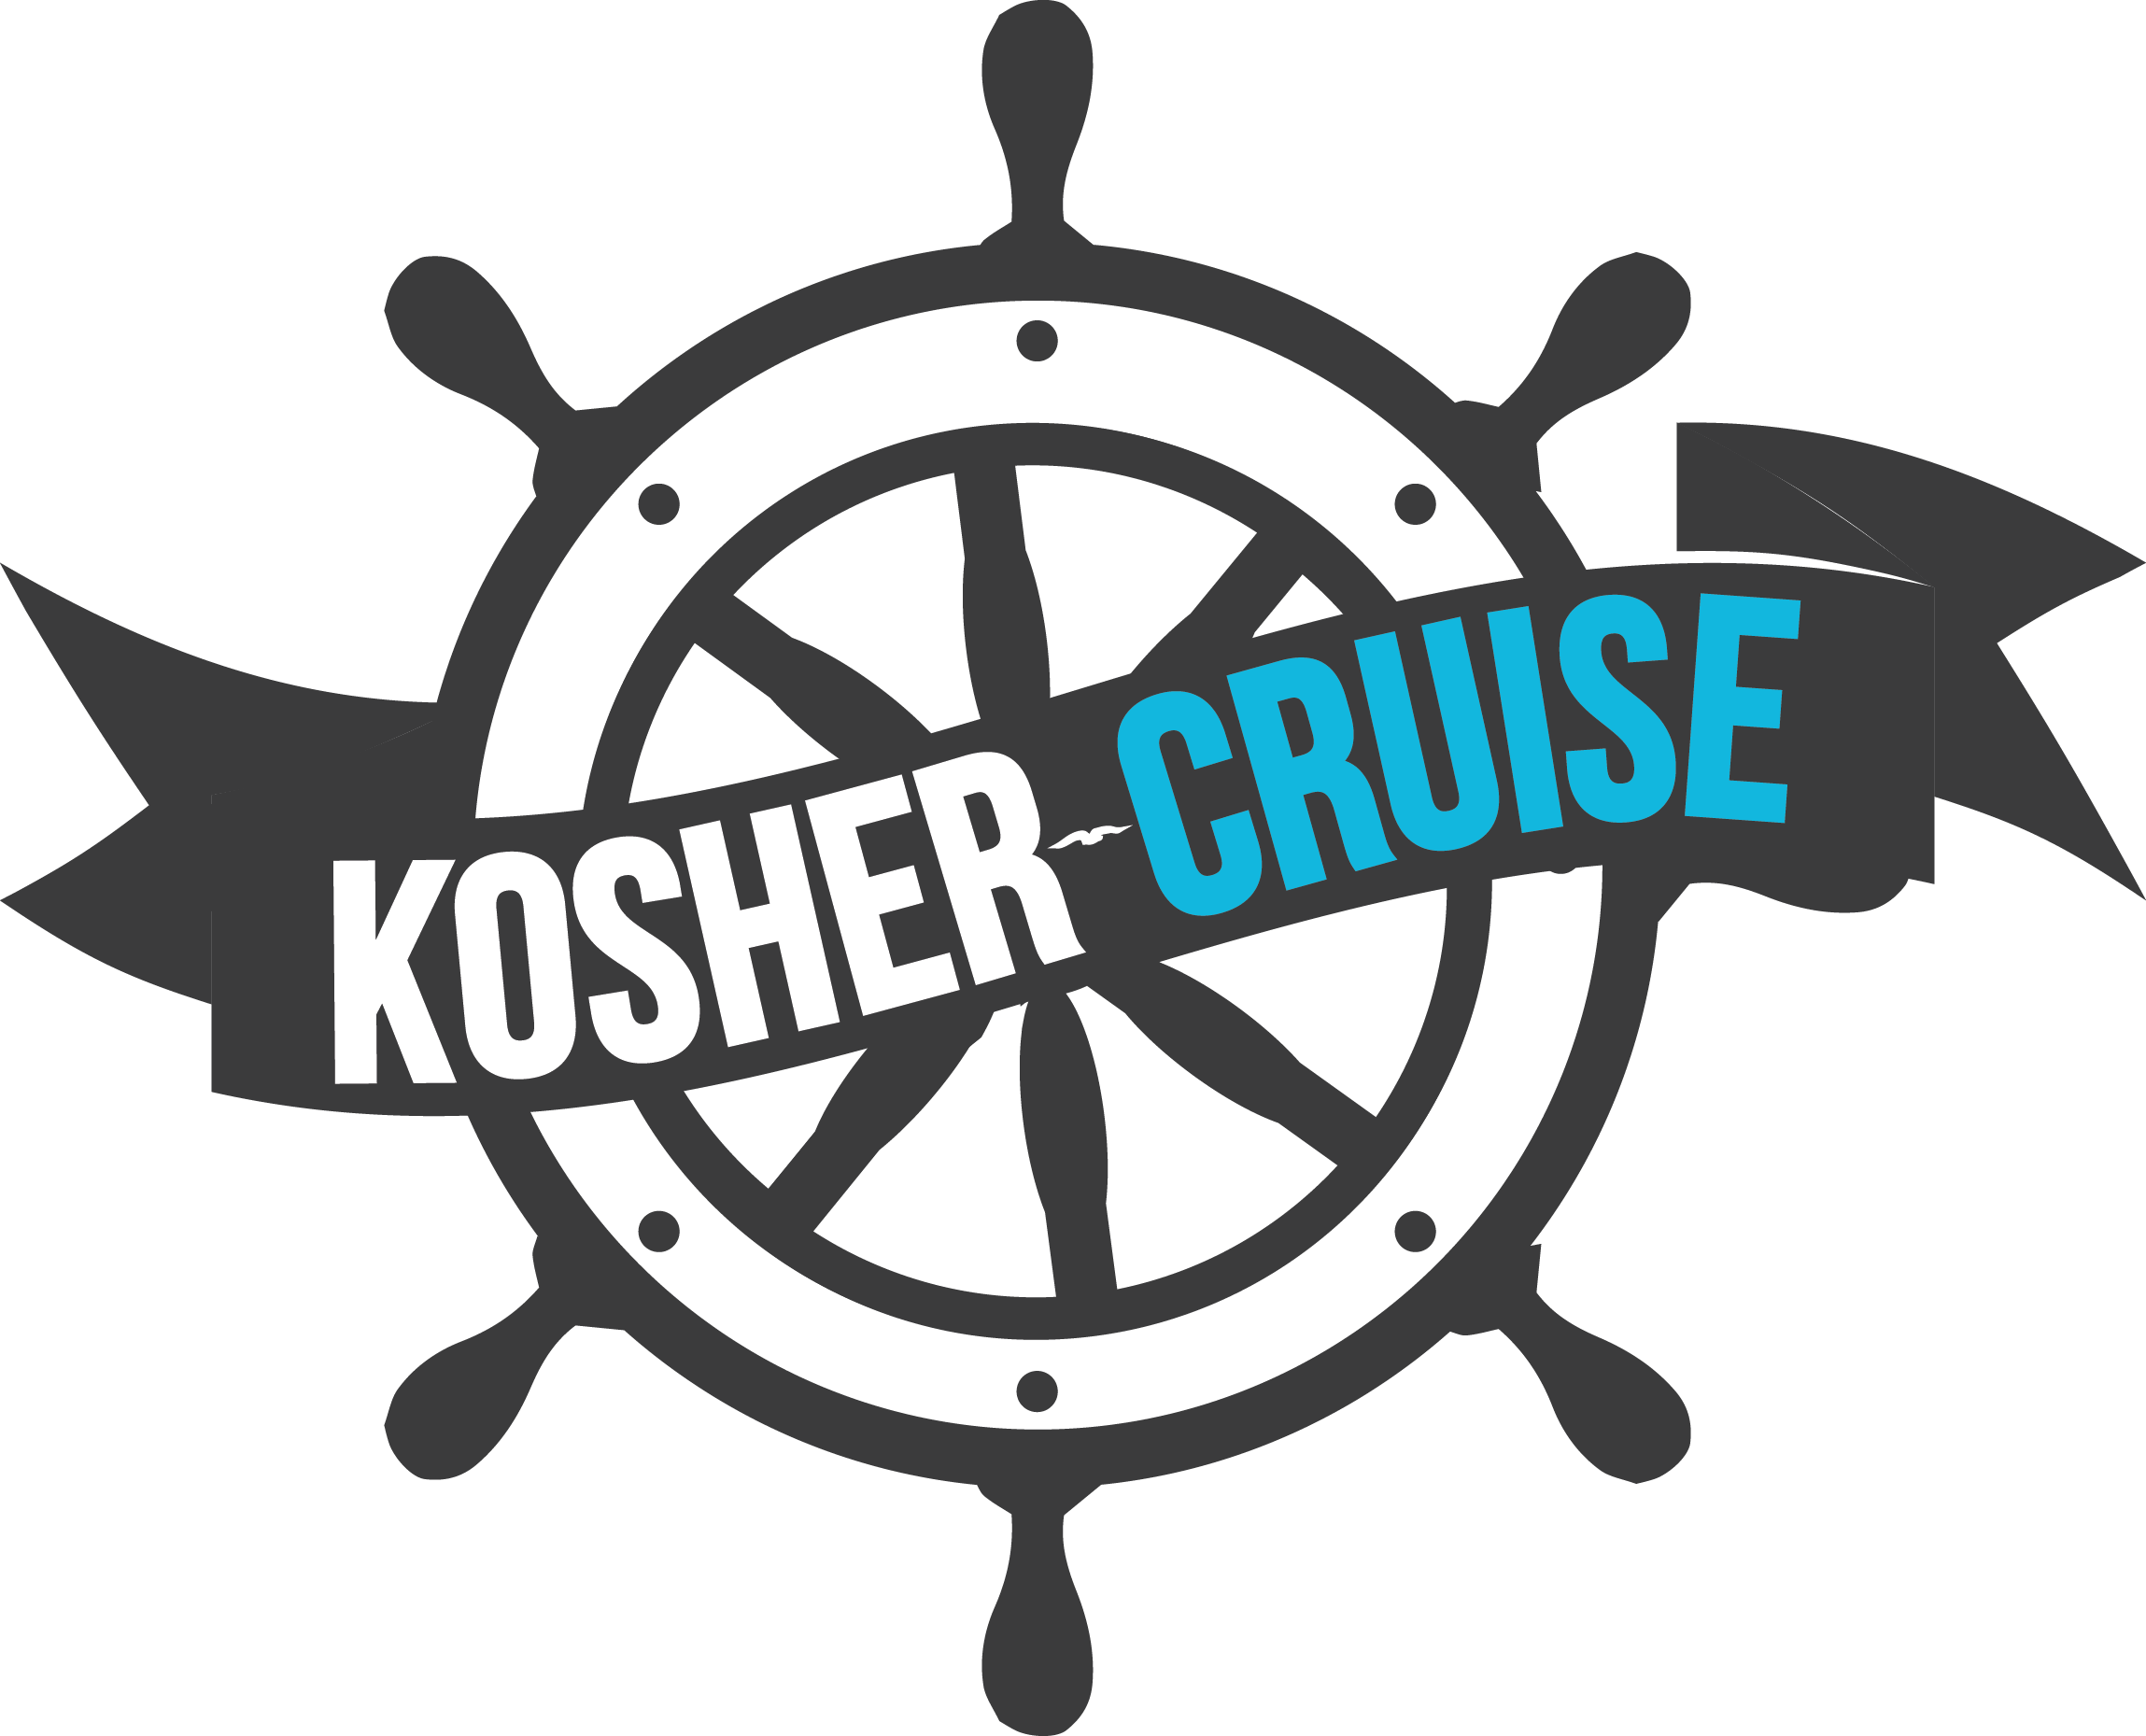 Kosher Cruise Ltd